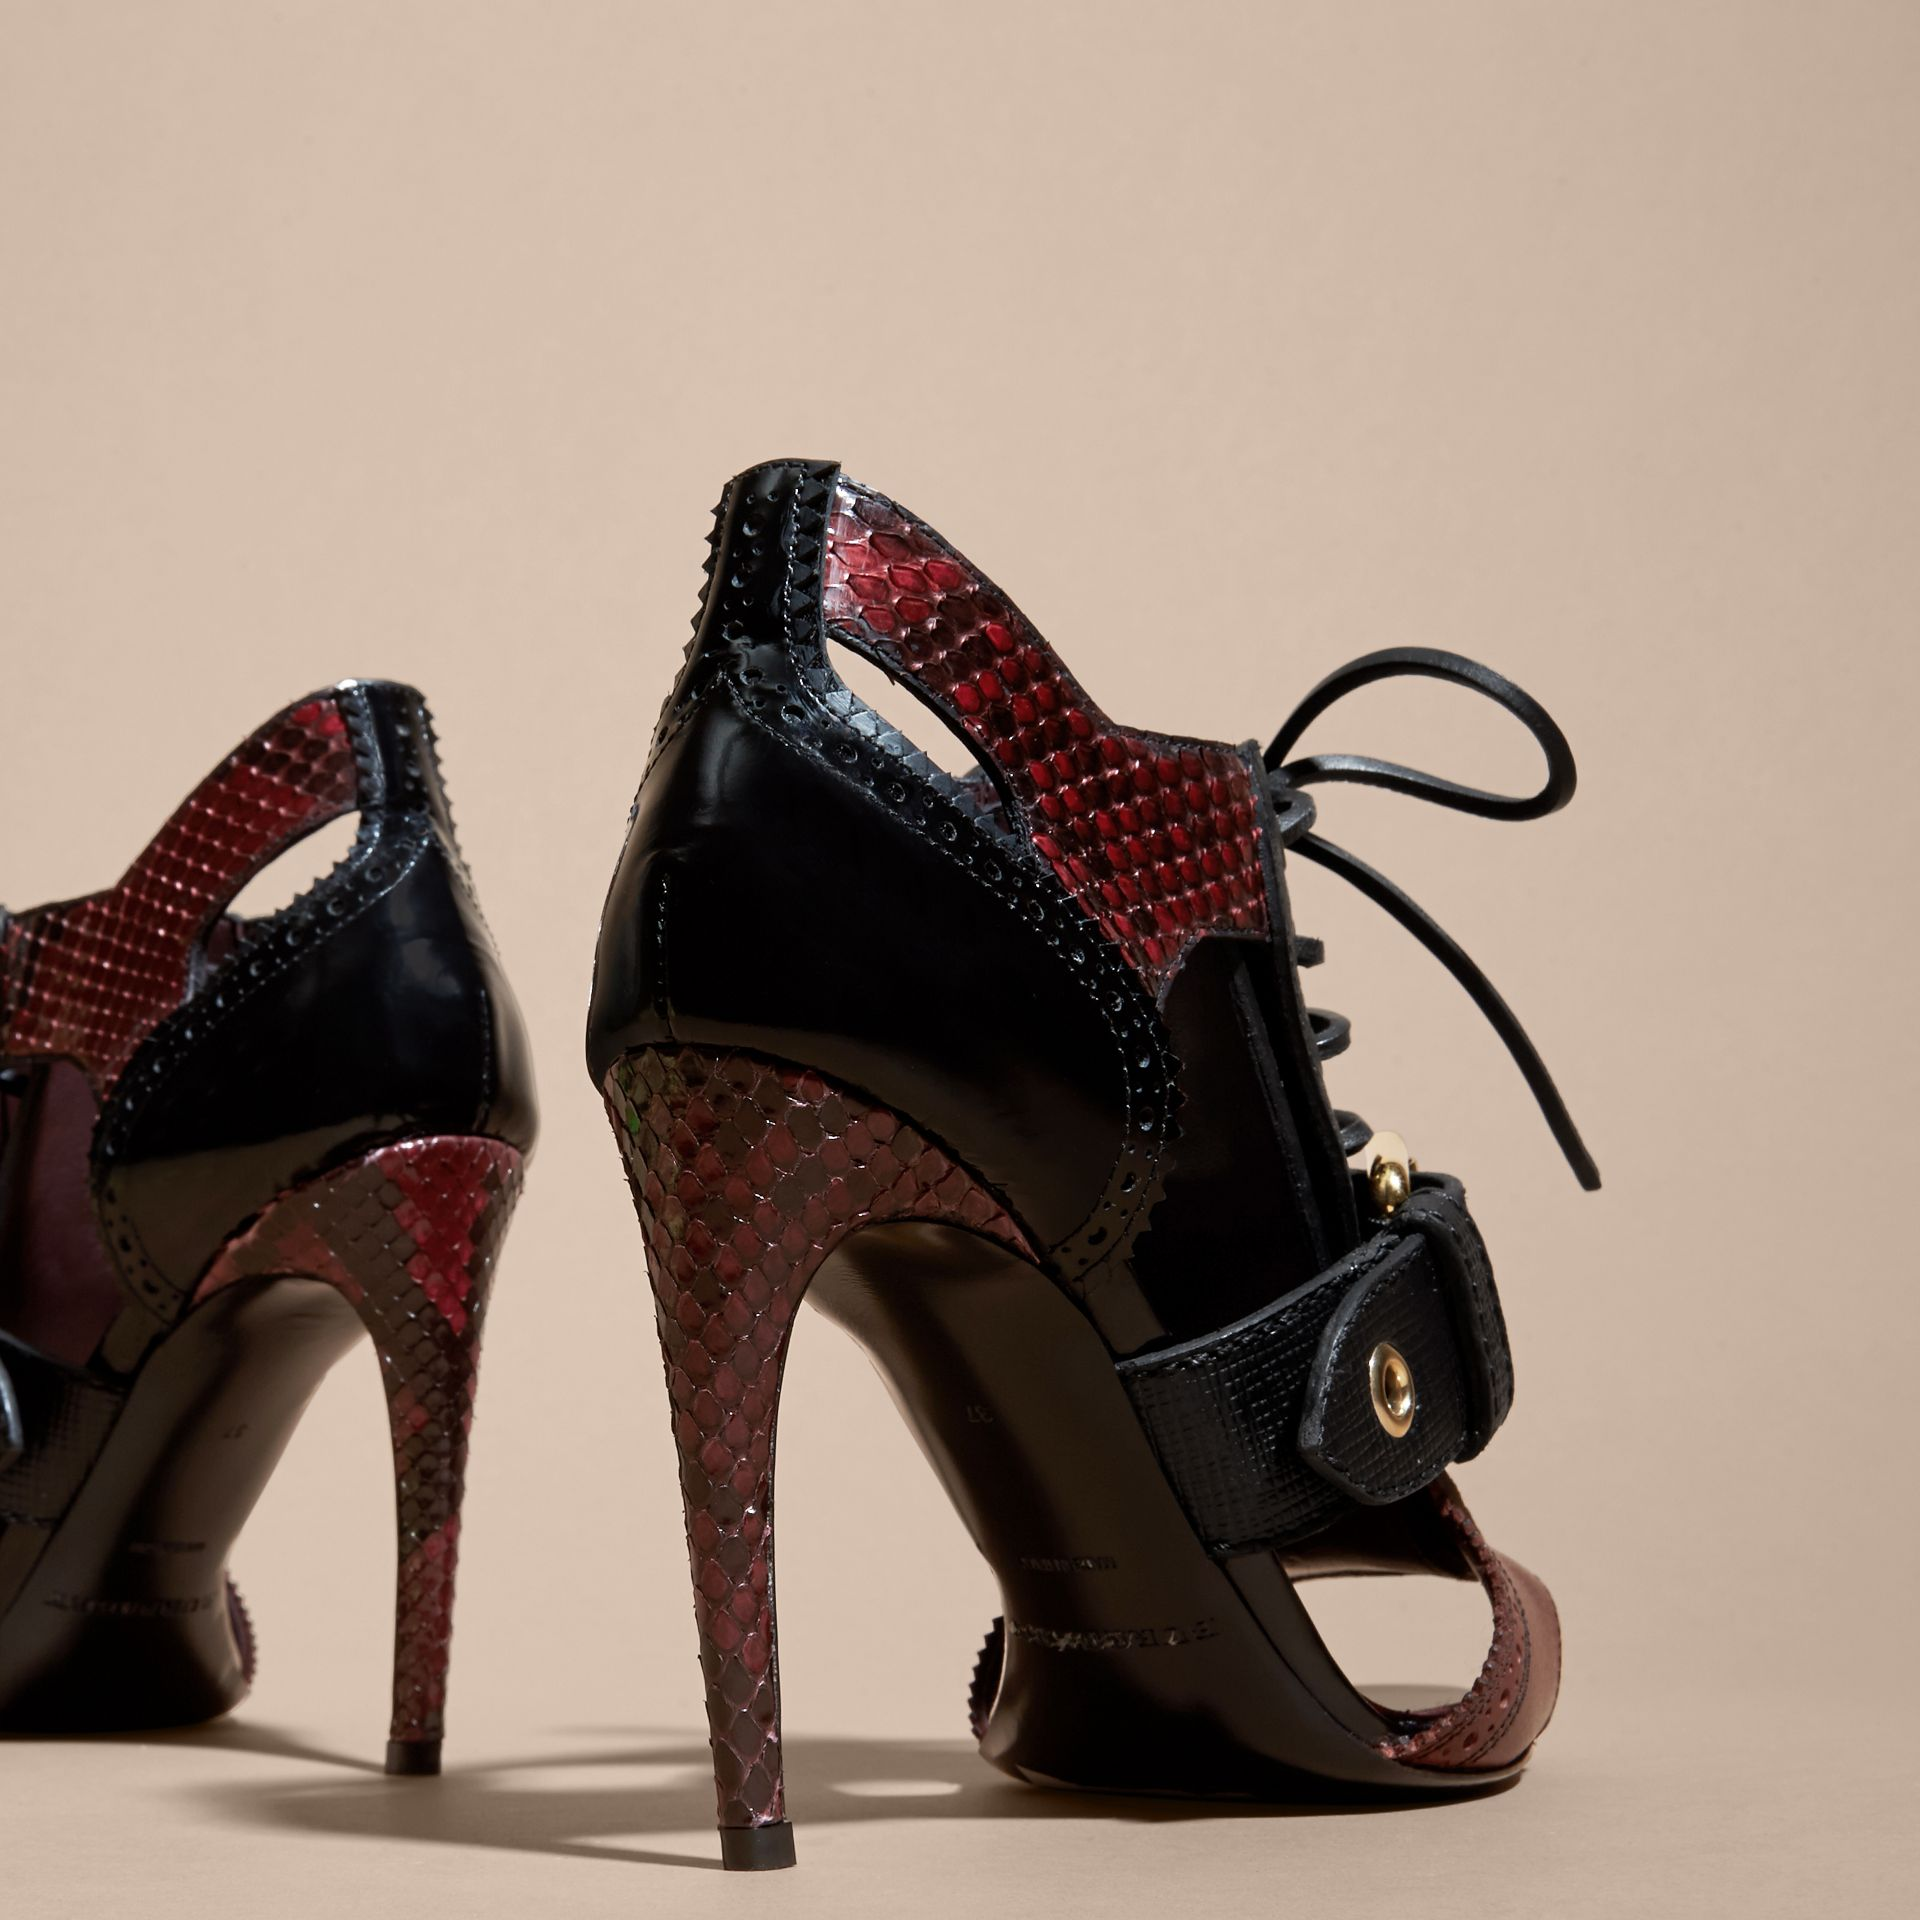 Buckle Detail Leather and Snakeskin Cut-out Ankle Boots in Bordeaux - gallery image 4